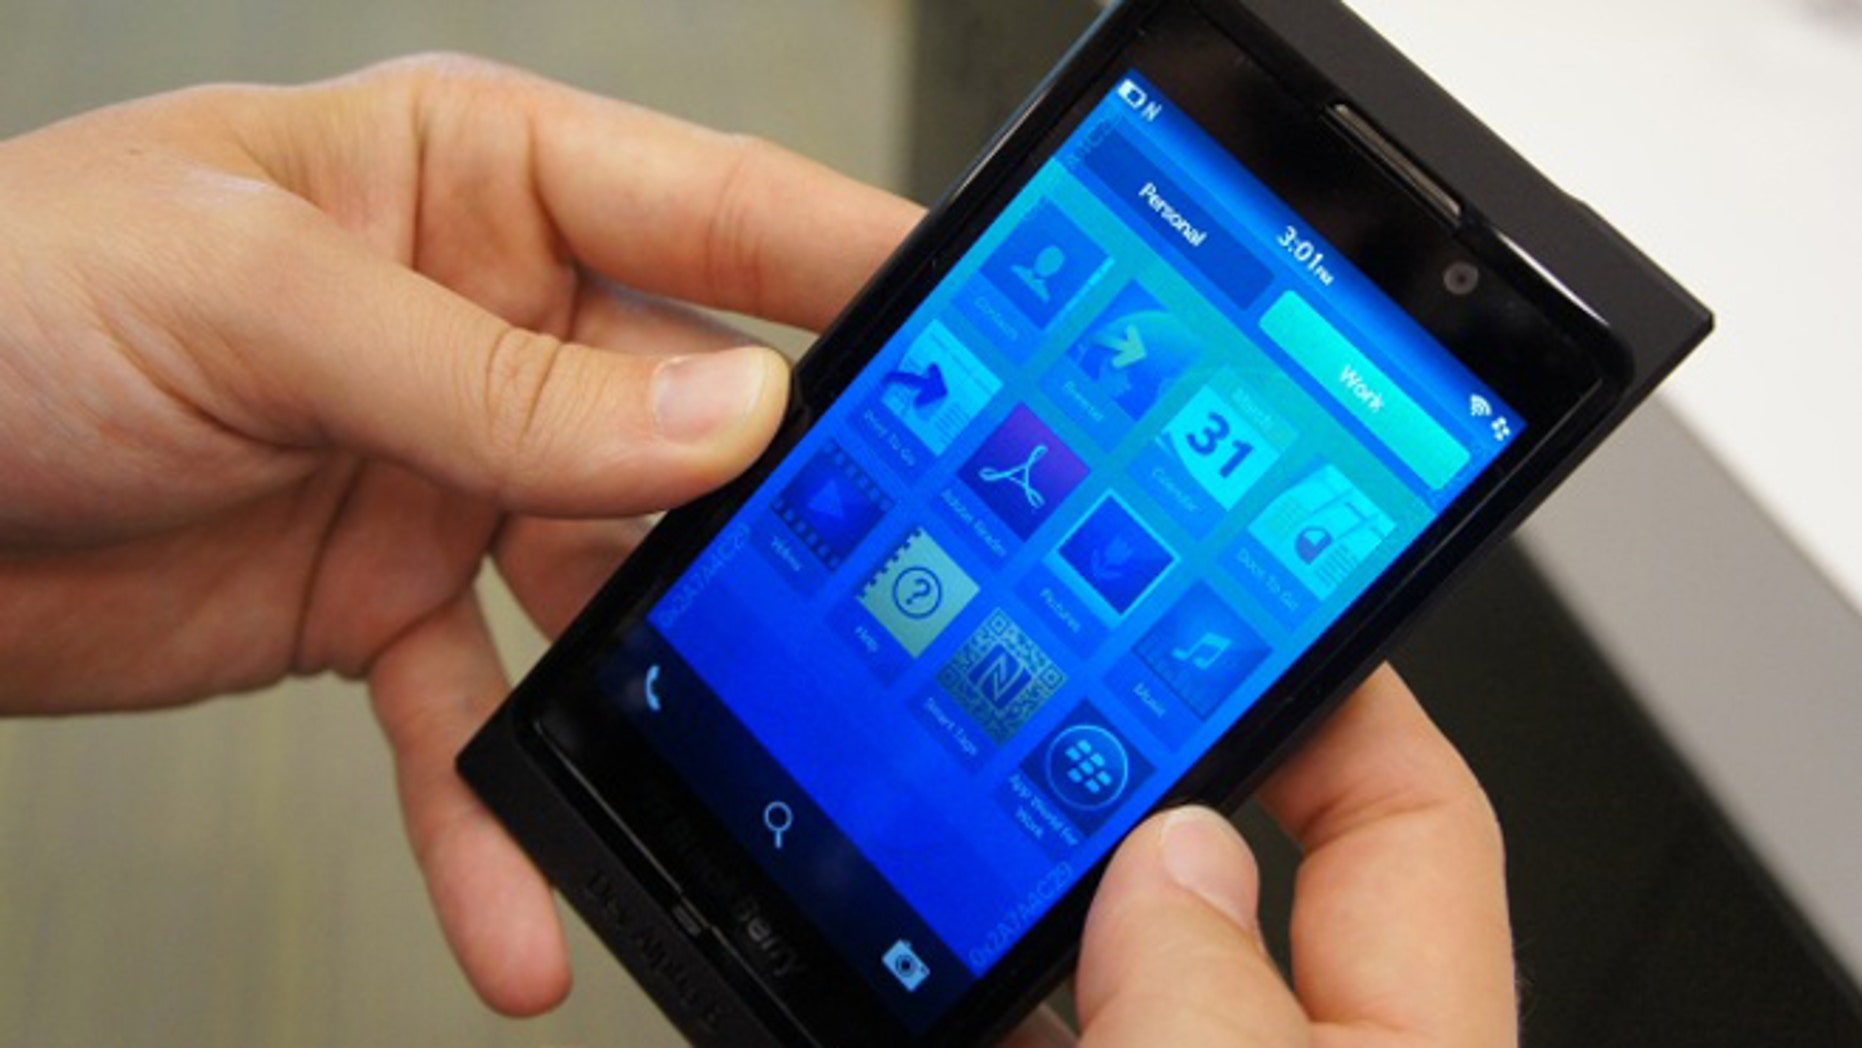 A preview version of the Blackberry 10 smartphone, shown off at the 2013 Consumer Electronics Show in Las Vegas.